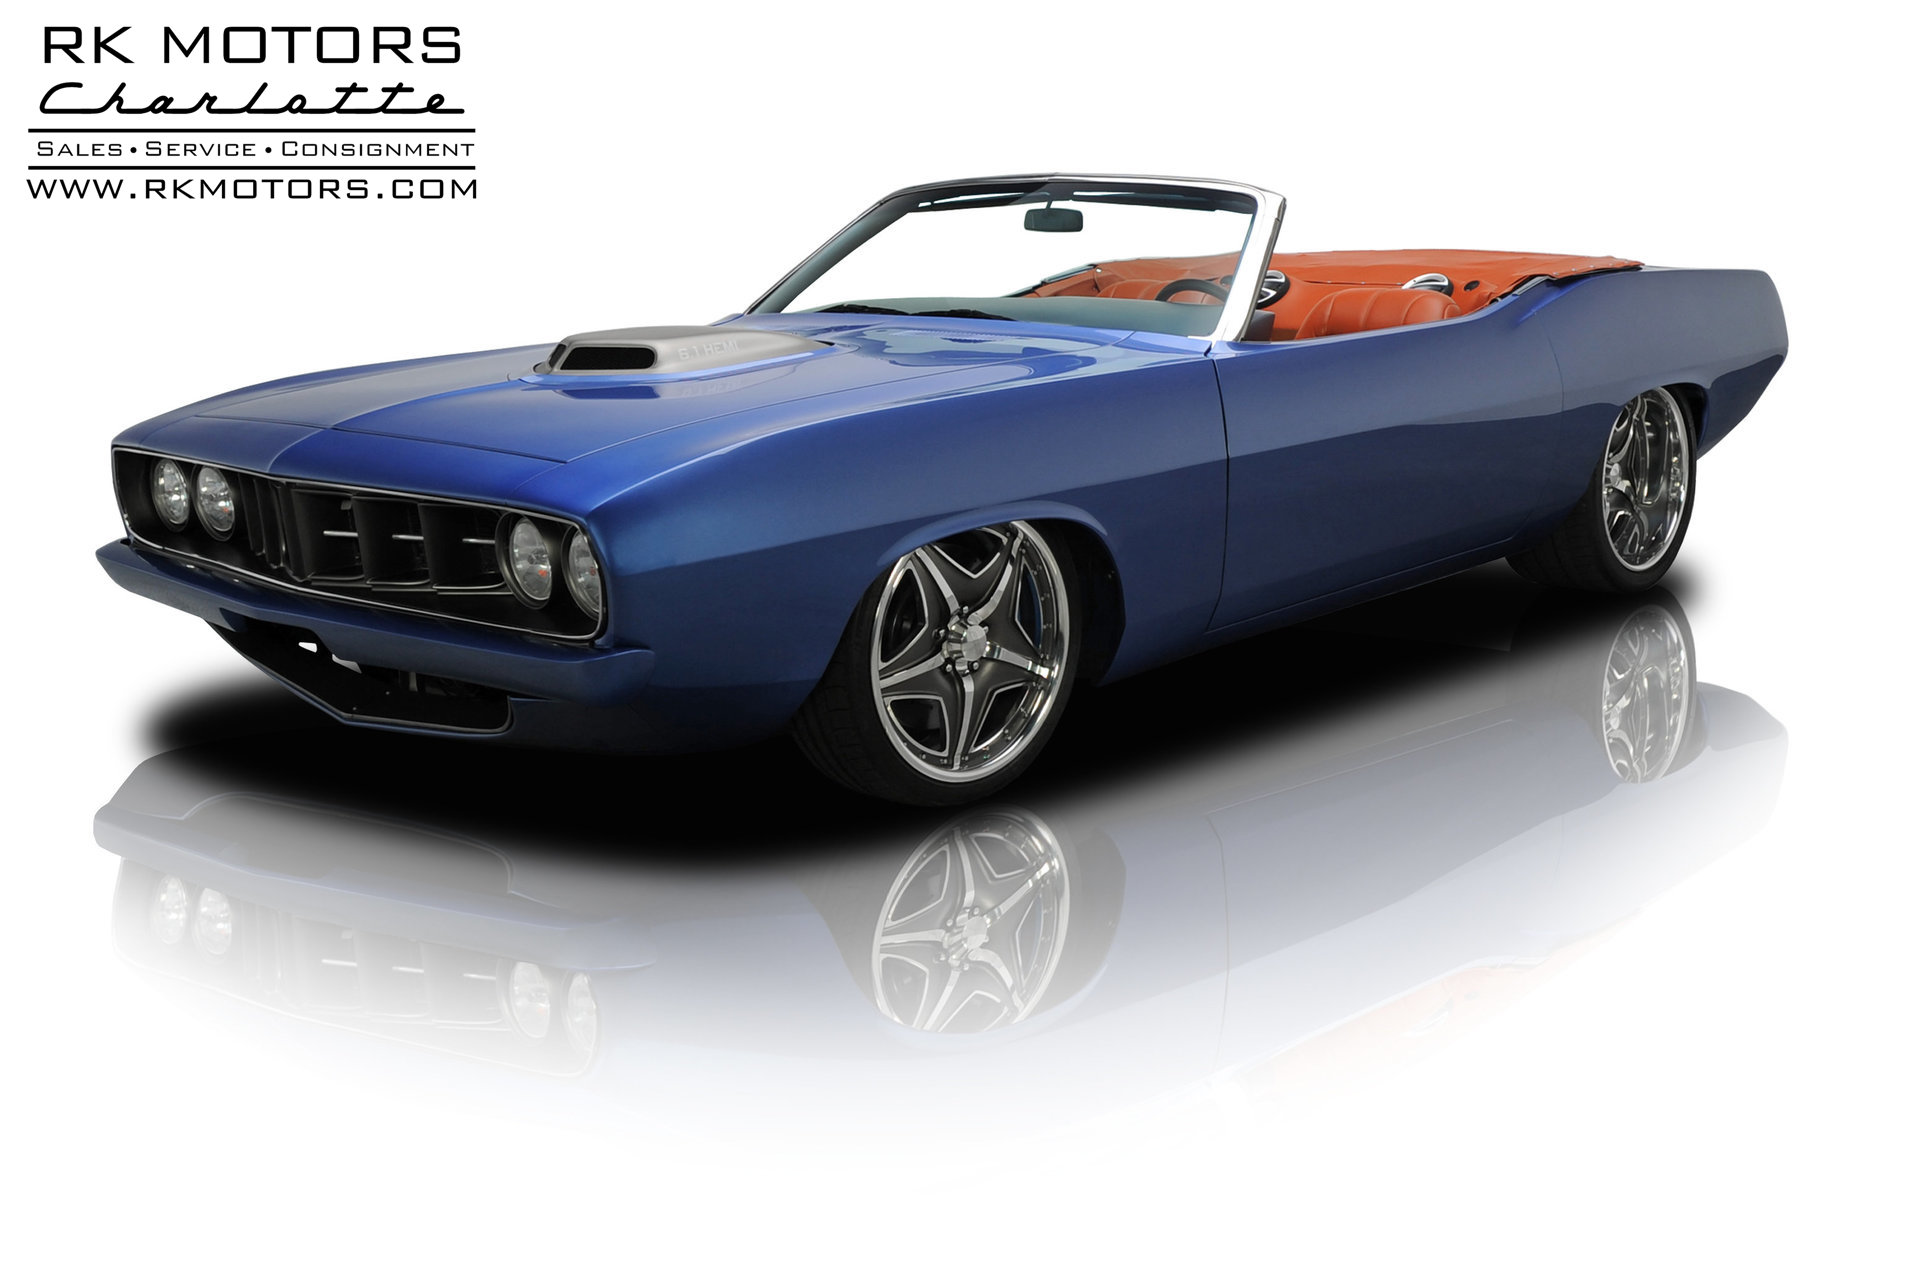 1970 Plymouth Cuda RK Motors Classic Cars for Sale